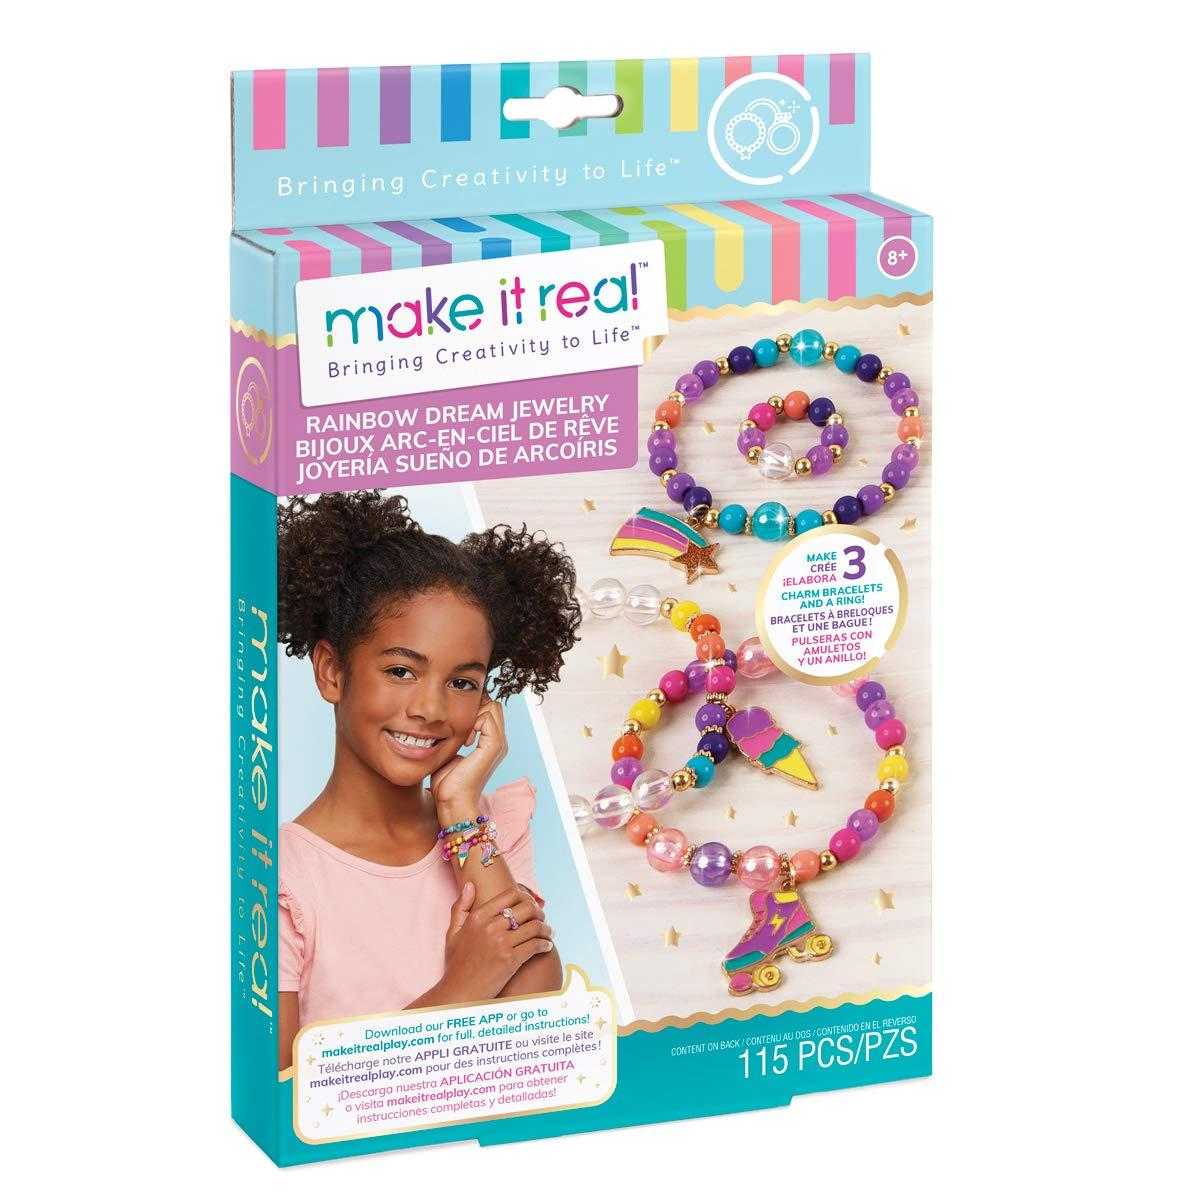 Make it real - Rinbow dream jewelry (1204)